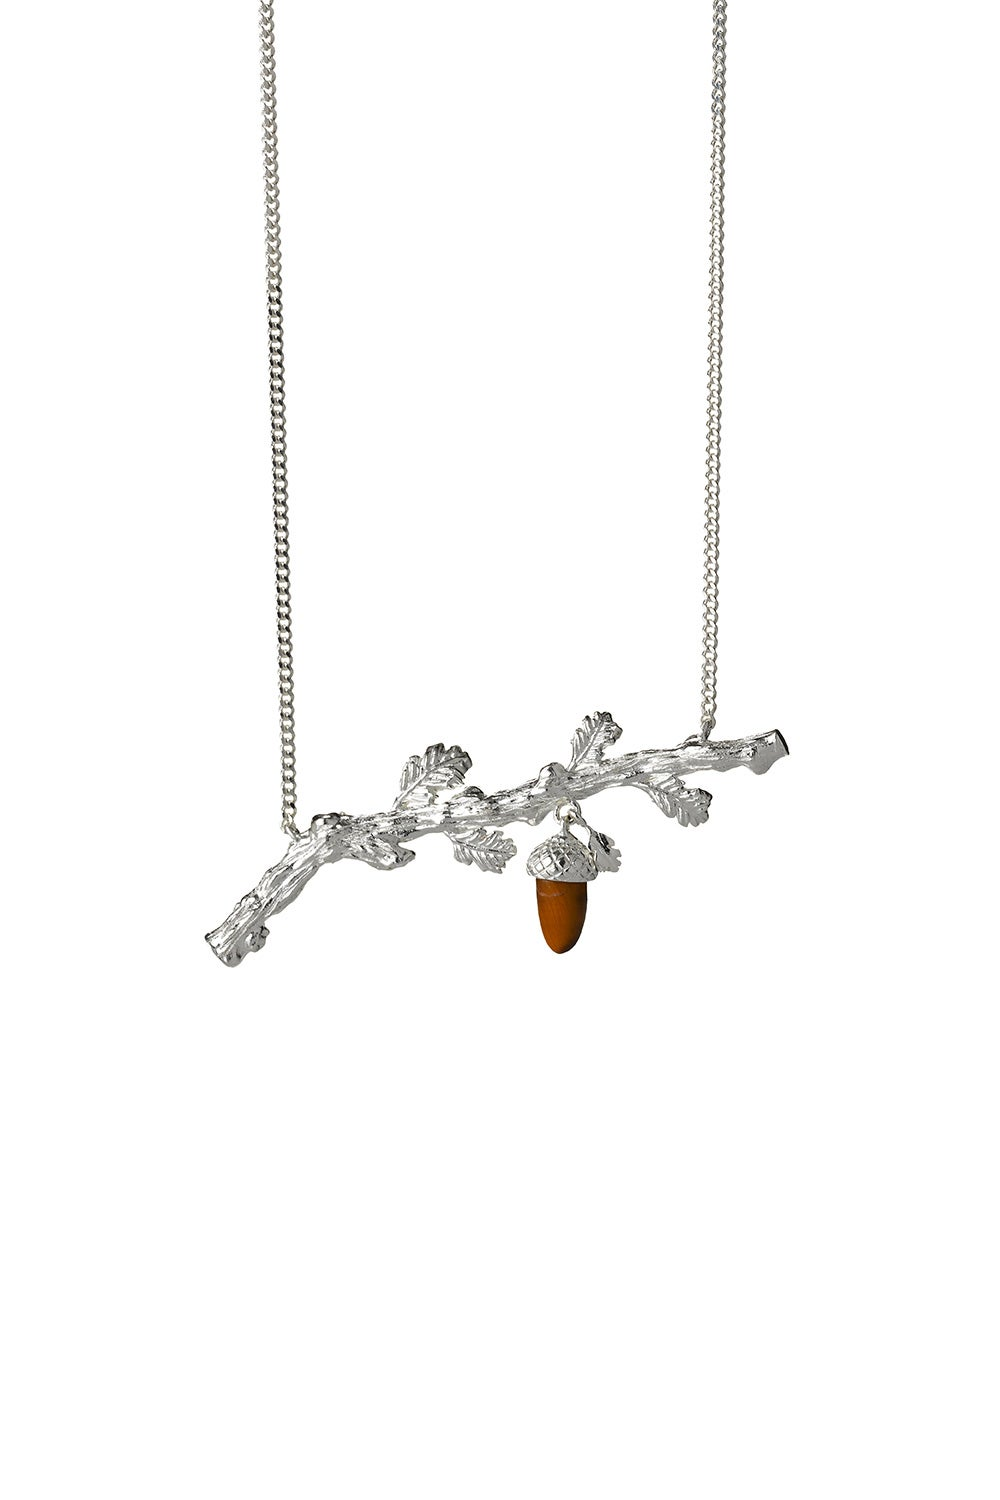 Oak Branch Necklace Silver